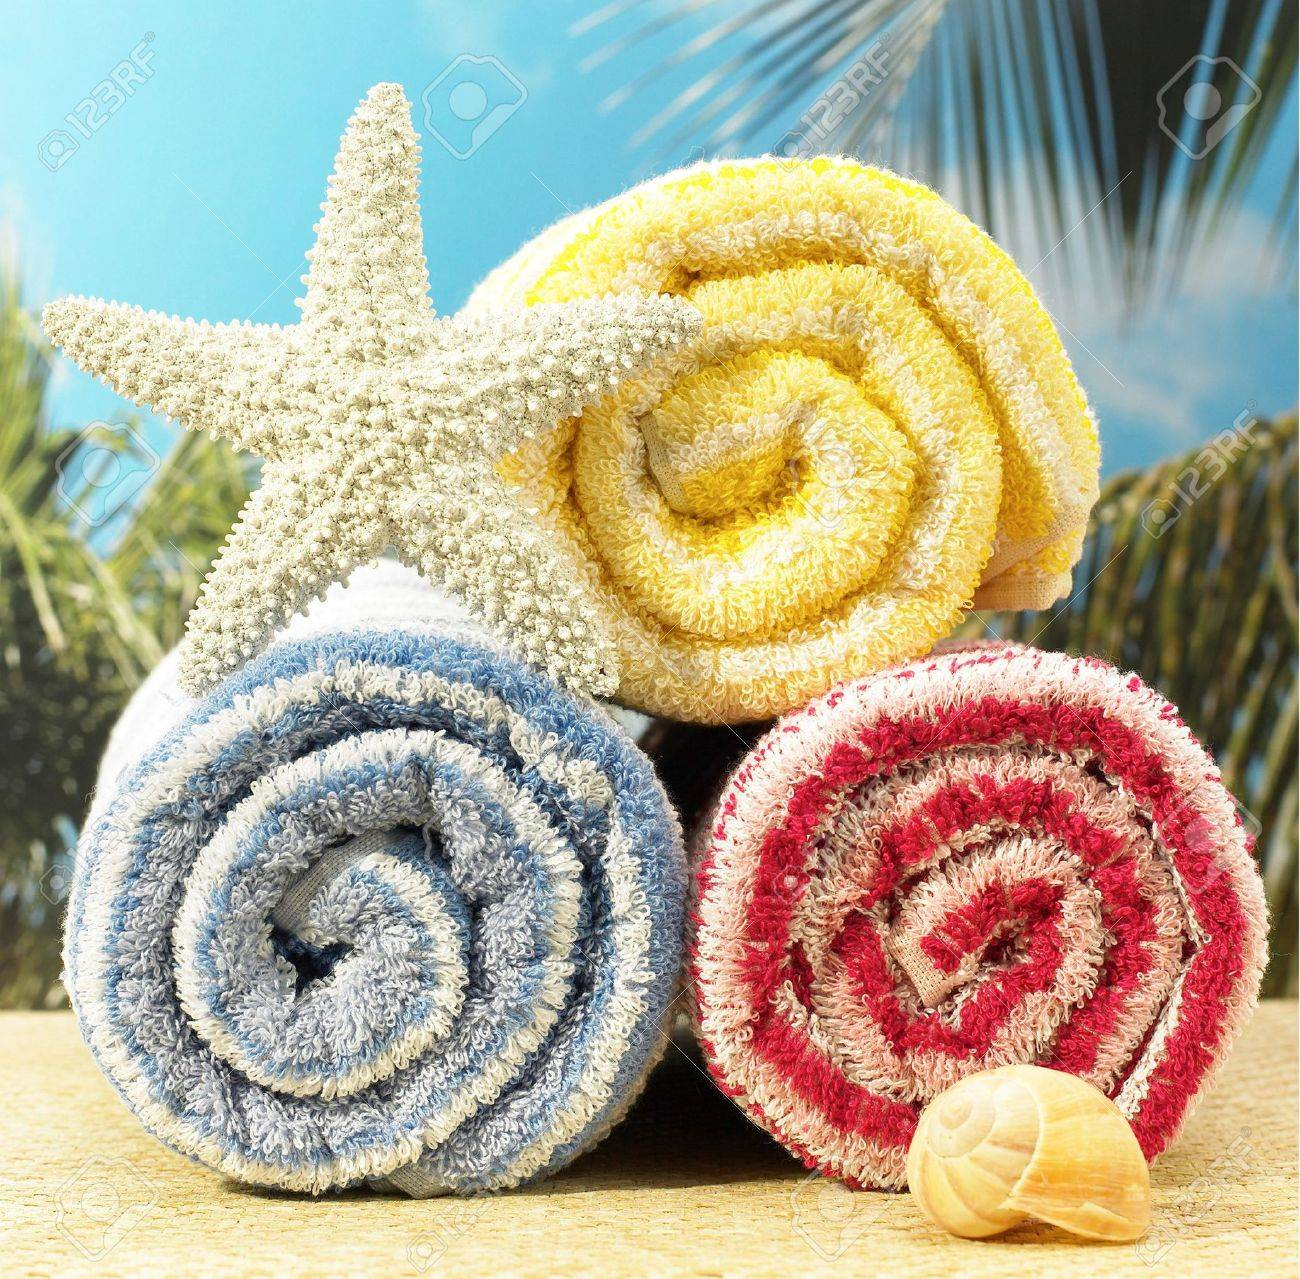 towels on beach Stock Photo - 461588